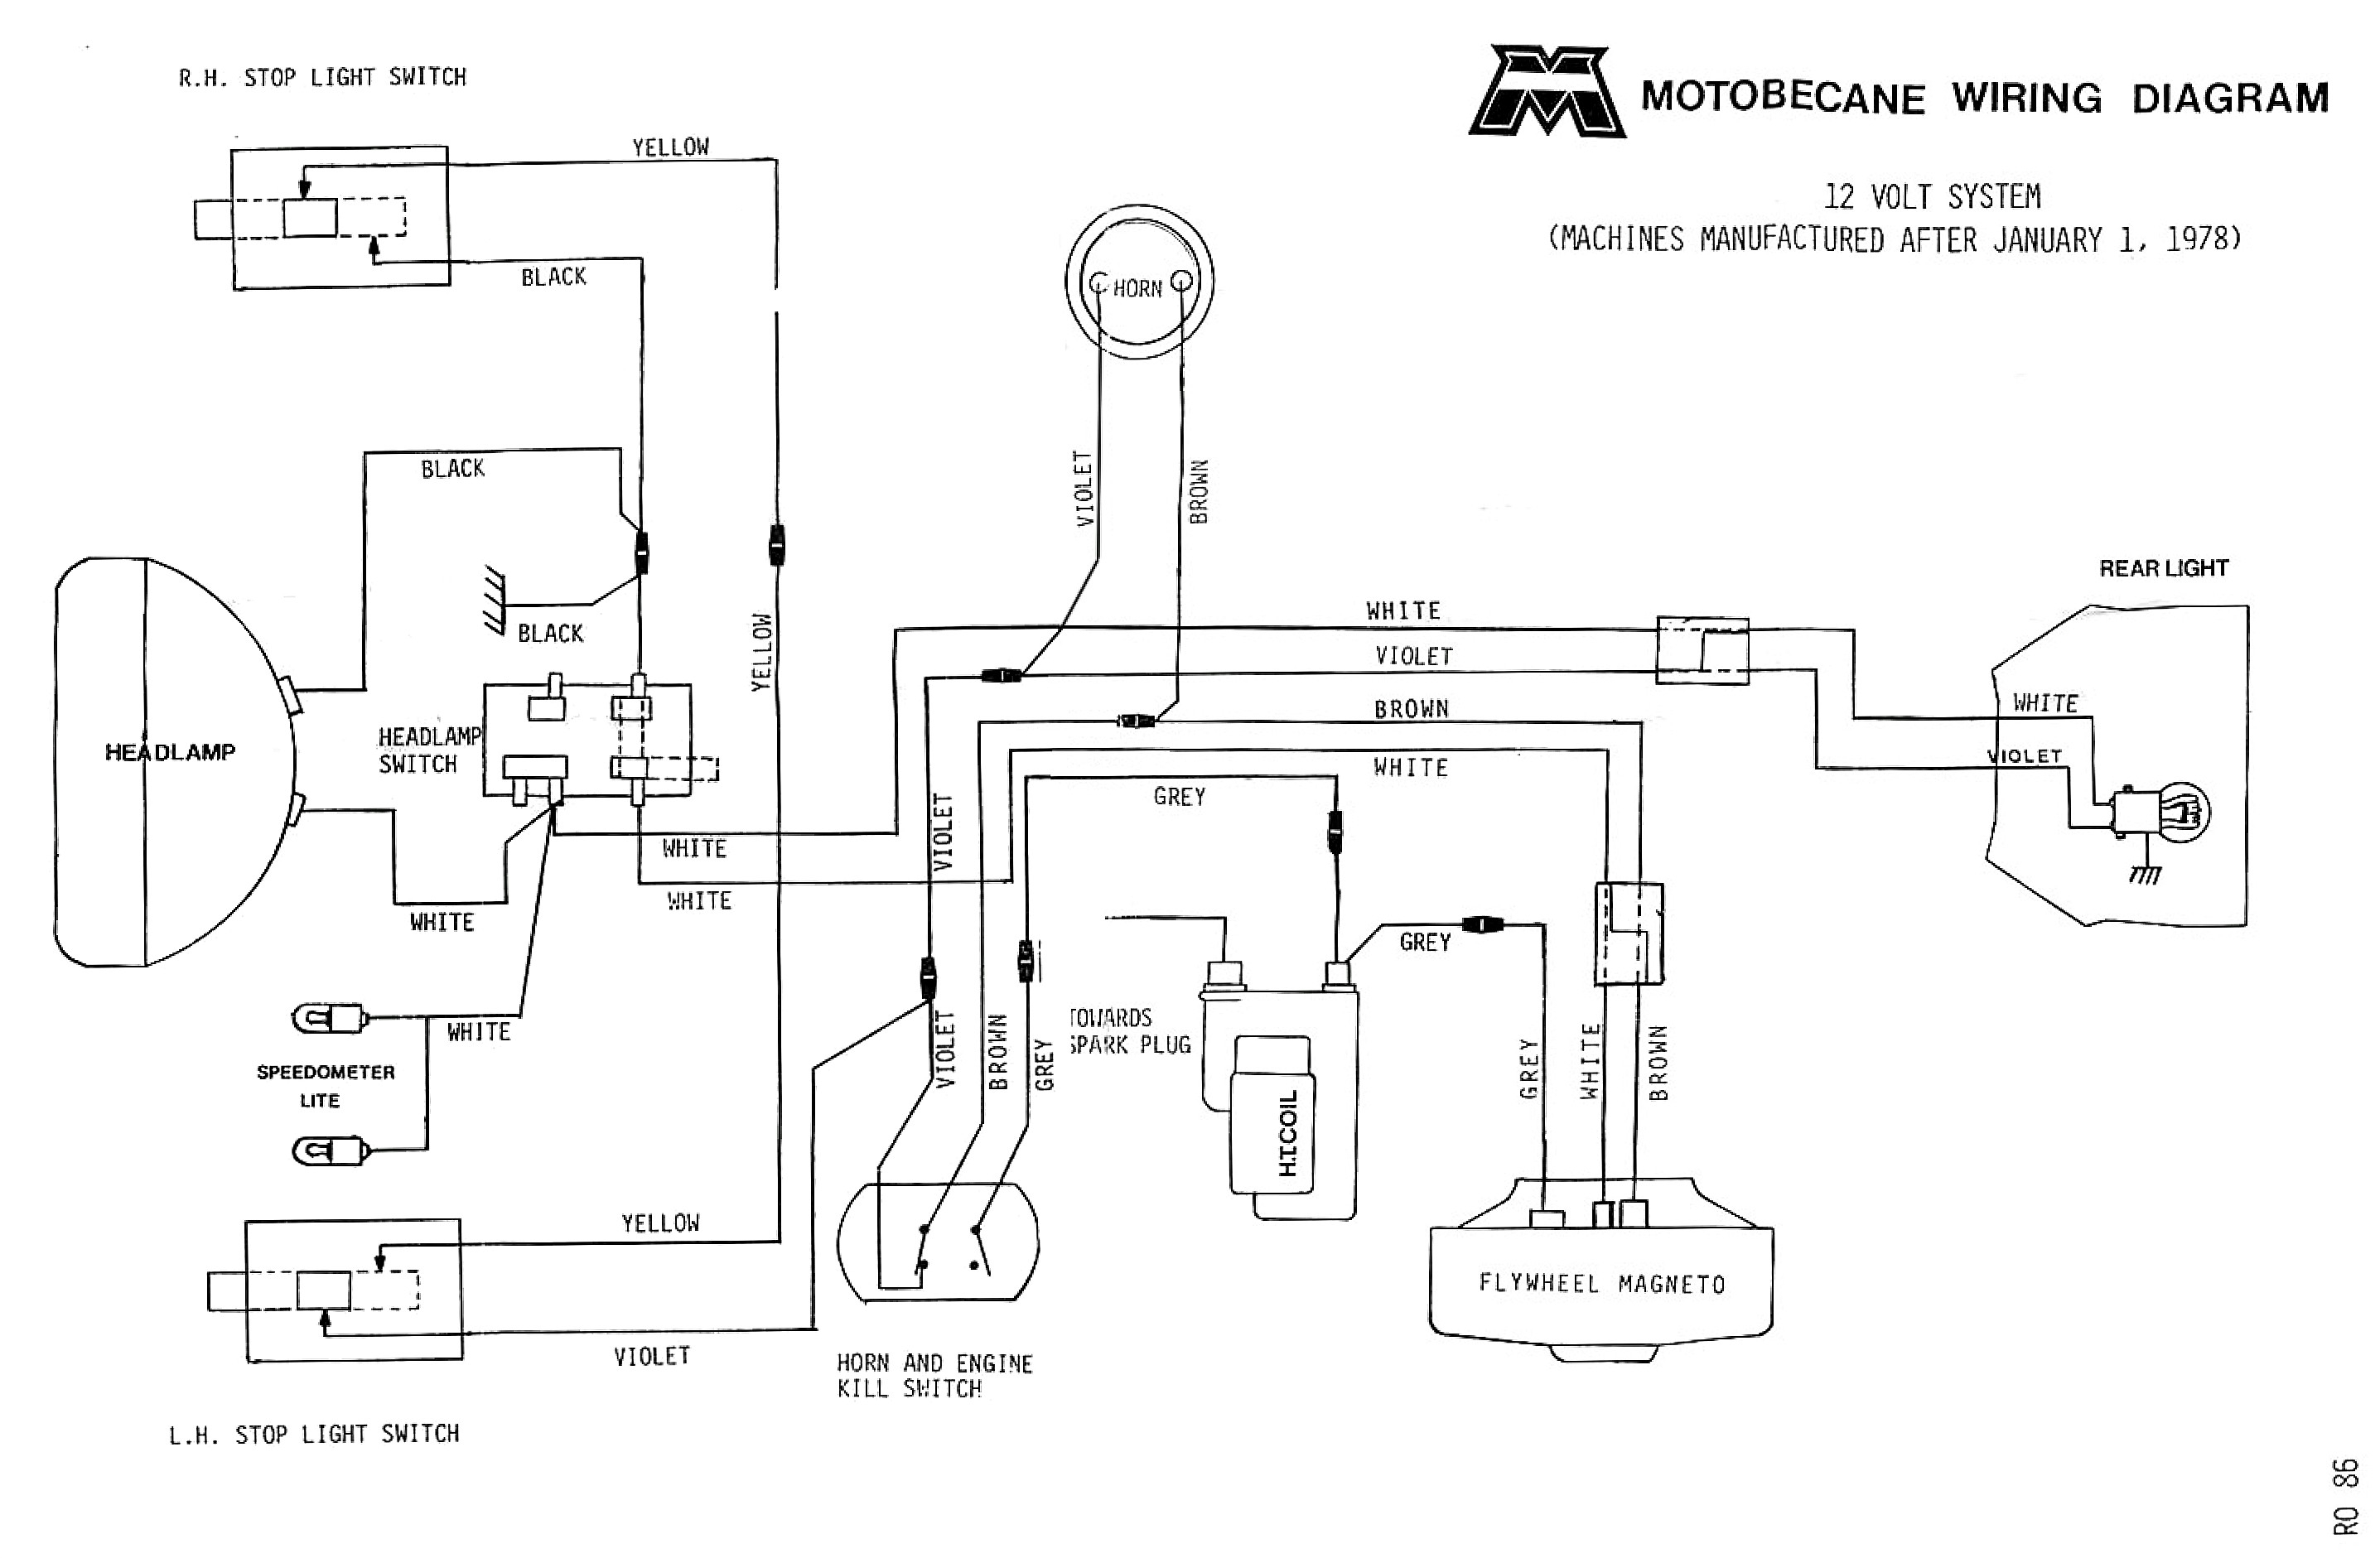 ford 8n 12 volt wiring wiring diagrams best 8n ford points distributor wiring wiring diagrams schematic ford 8n 6 volt wiring diagram ford 8n 12 volt wiring